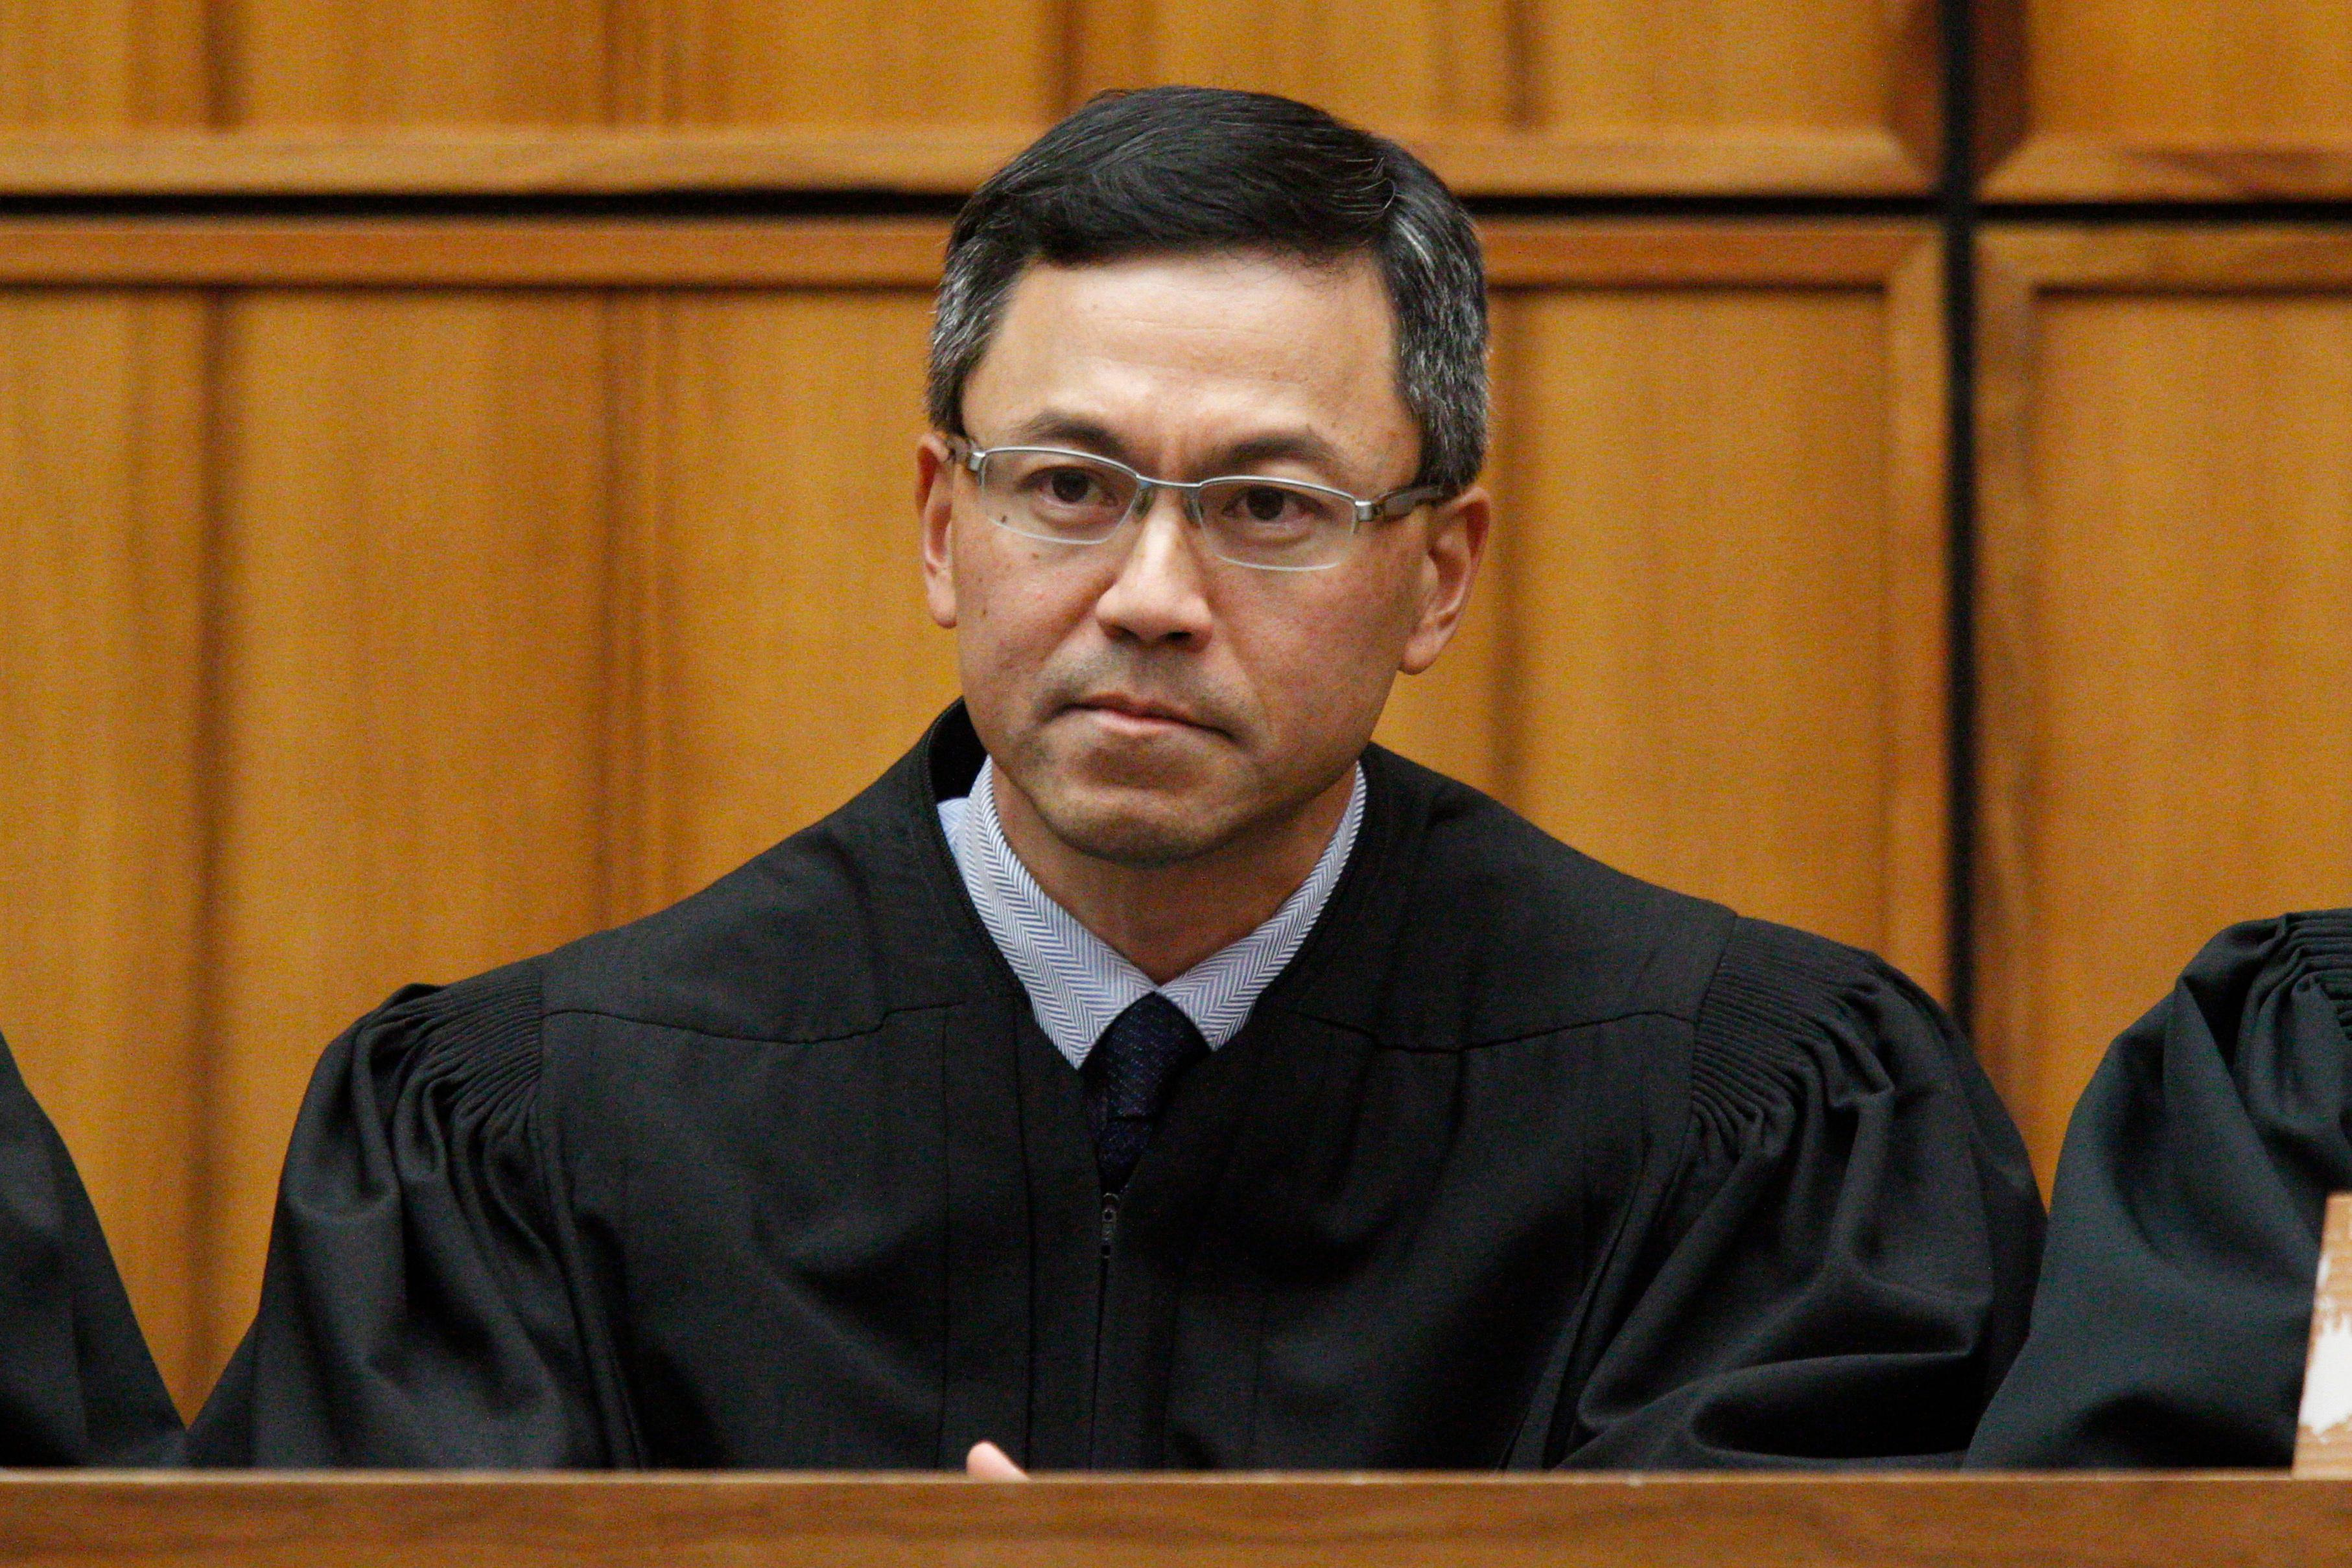 "FILE - This Dec. 2015 file photo shows U.S. District Judge Derrick Watson in Honolulu. Hawaii's Democratic lawmakers on Thursday, April 20, 2017, criticized Attorney General Jeff Sessions after he expressed amazement on a radio show that a ""judge sitting on an island in the Pacific"" could stop the president's travel ban. Watson last month blocked President Donald Trump's executive order prohibiting new visas for people from six Muslim-majority countries and temporarily halting the U.S. refugee program. The Trump Administration appealed the ruling. (George Lee/The Star-Advertiser via AP, File)"